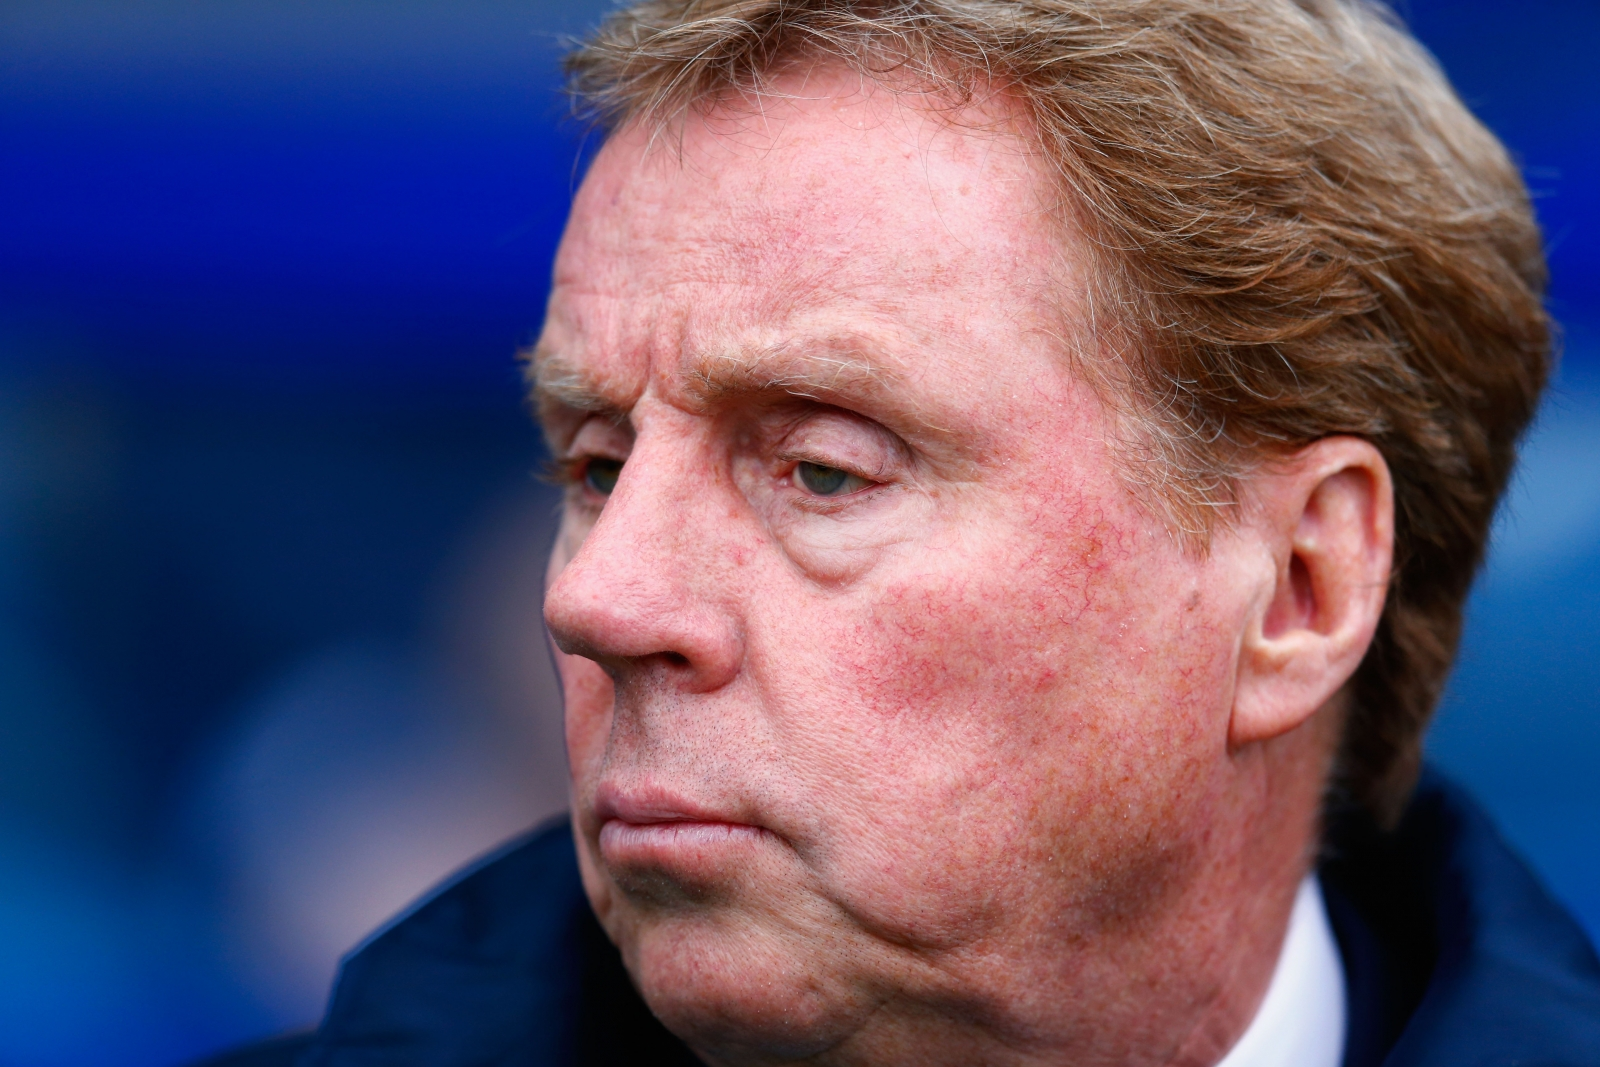 Harry Redknapp tasked with keeping Birmingham up - The Gambling Times